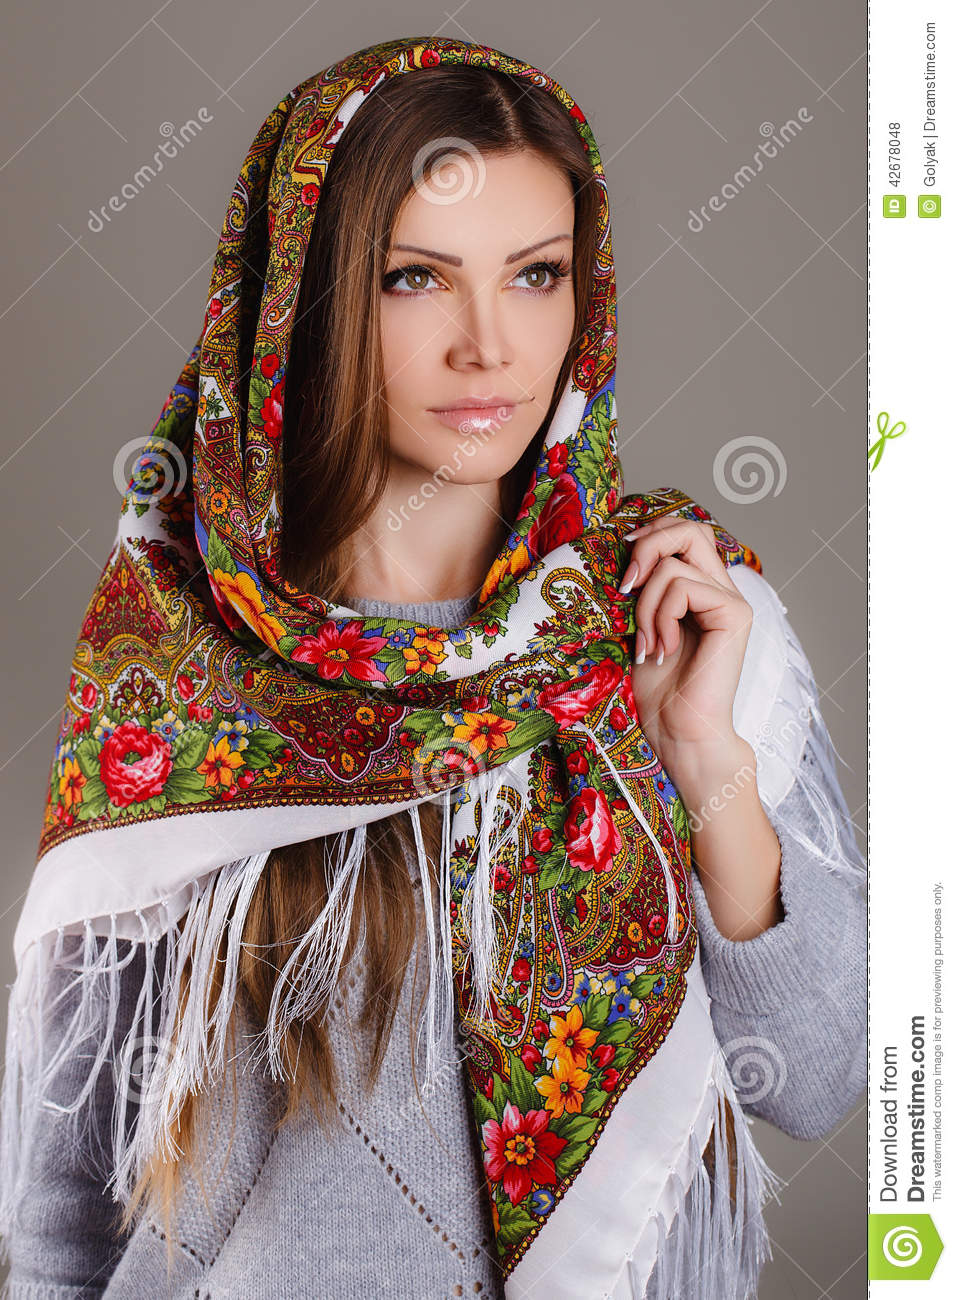 Your Russian Woman Could Look 7